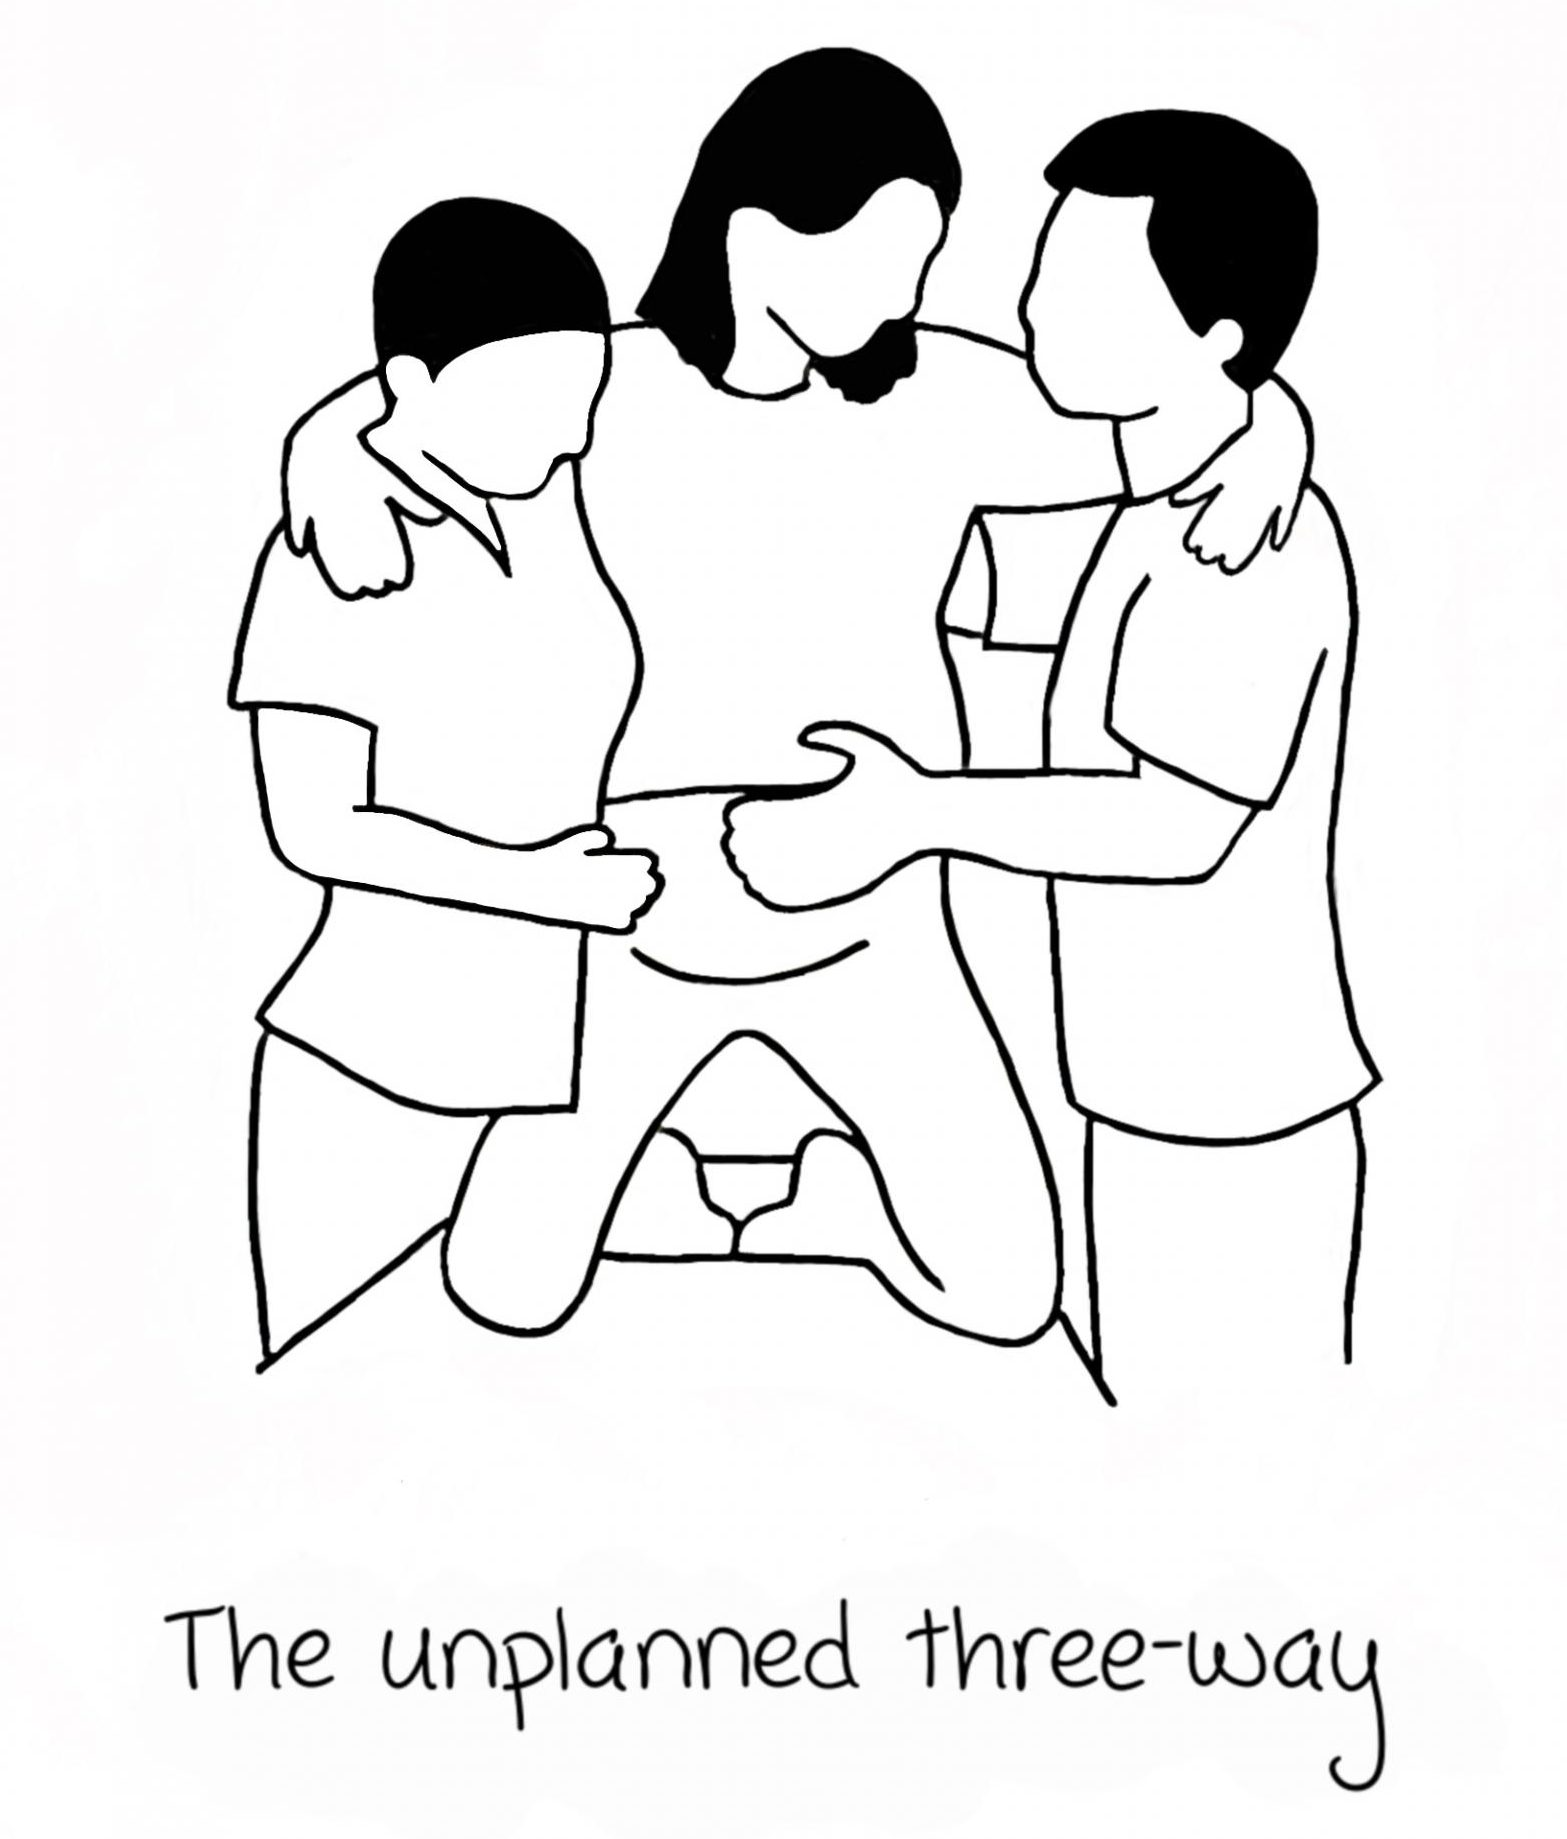 If Kama Sutra did birthing positions - The unplanned three-way